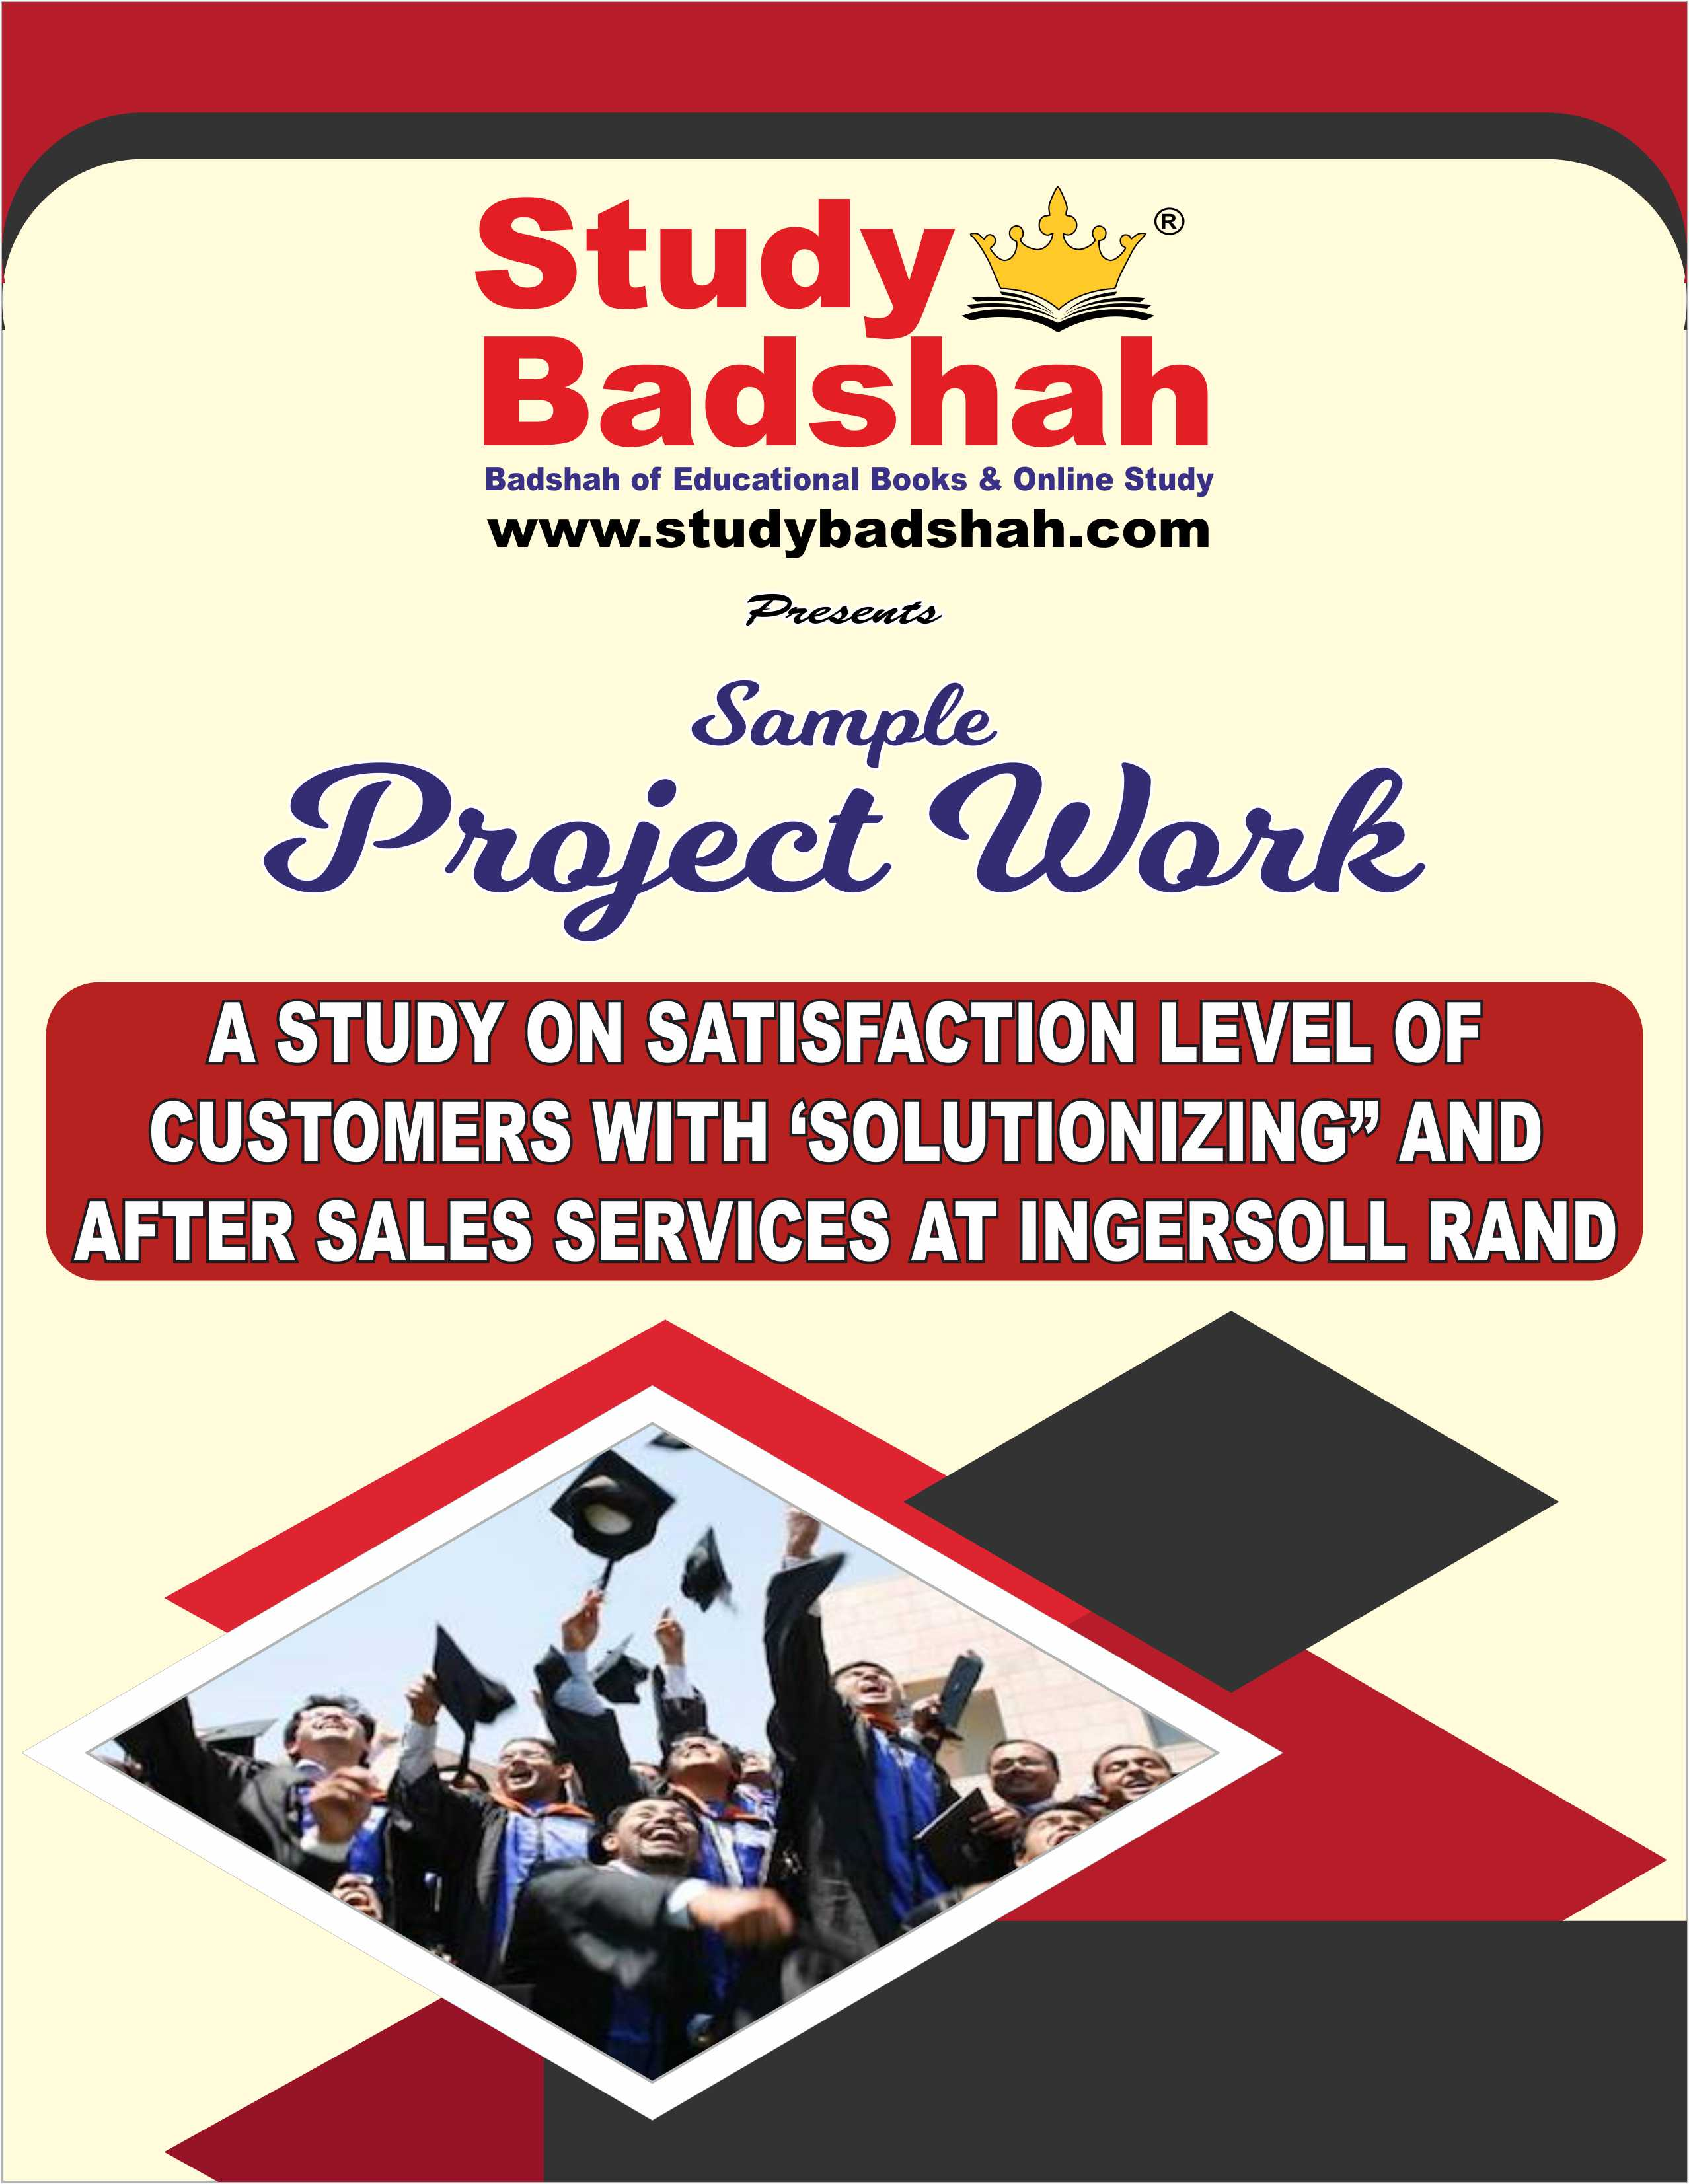 A STUDY ON SATISFACTION LEVEL OF CUSTOMERS WITH SOLUTIONIZING AND AFTER SALES SERVICES AT INGERSOLL RAND